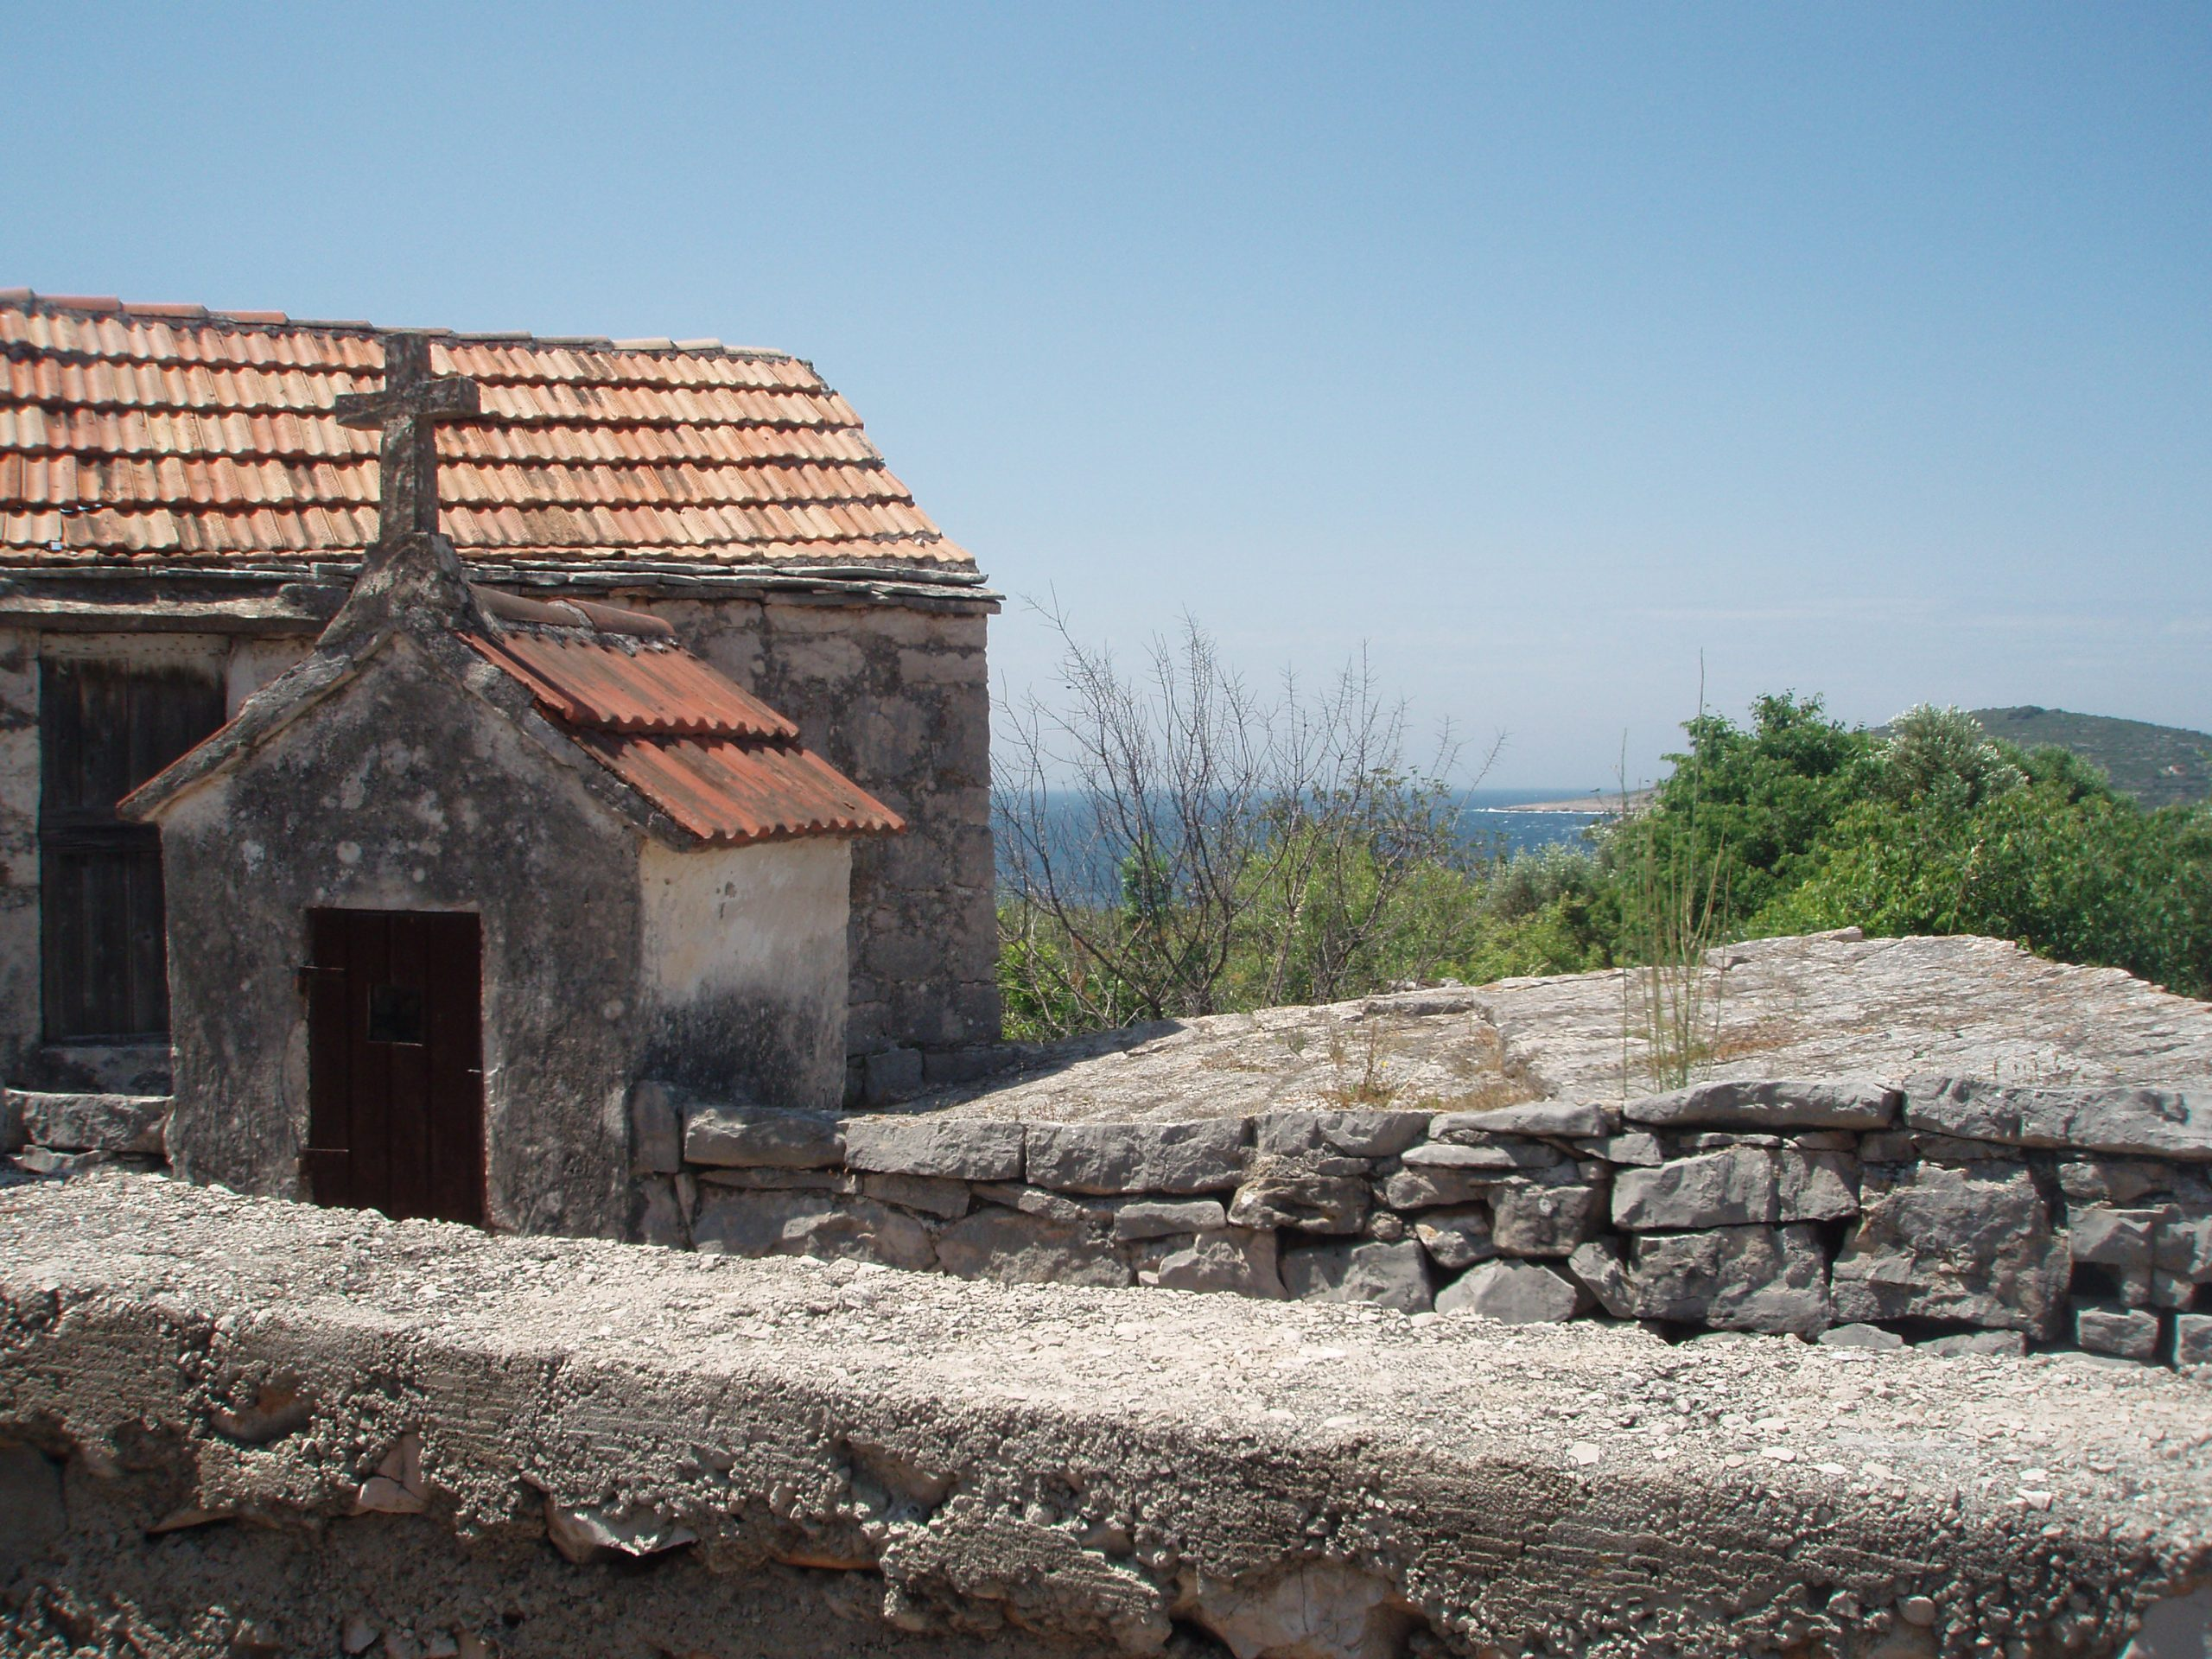 A scene from the almost deserted village of Petomavar above the cove of Vela Rina. Sealed and dried-up water tanks and torn-down stone walls, with macchia breaking out through the glassless windows, surround the few inhabited homes.